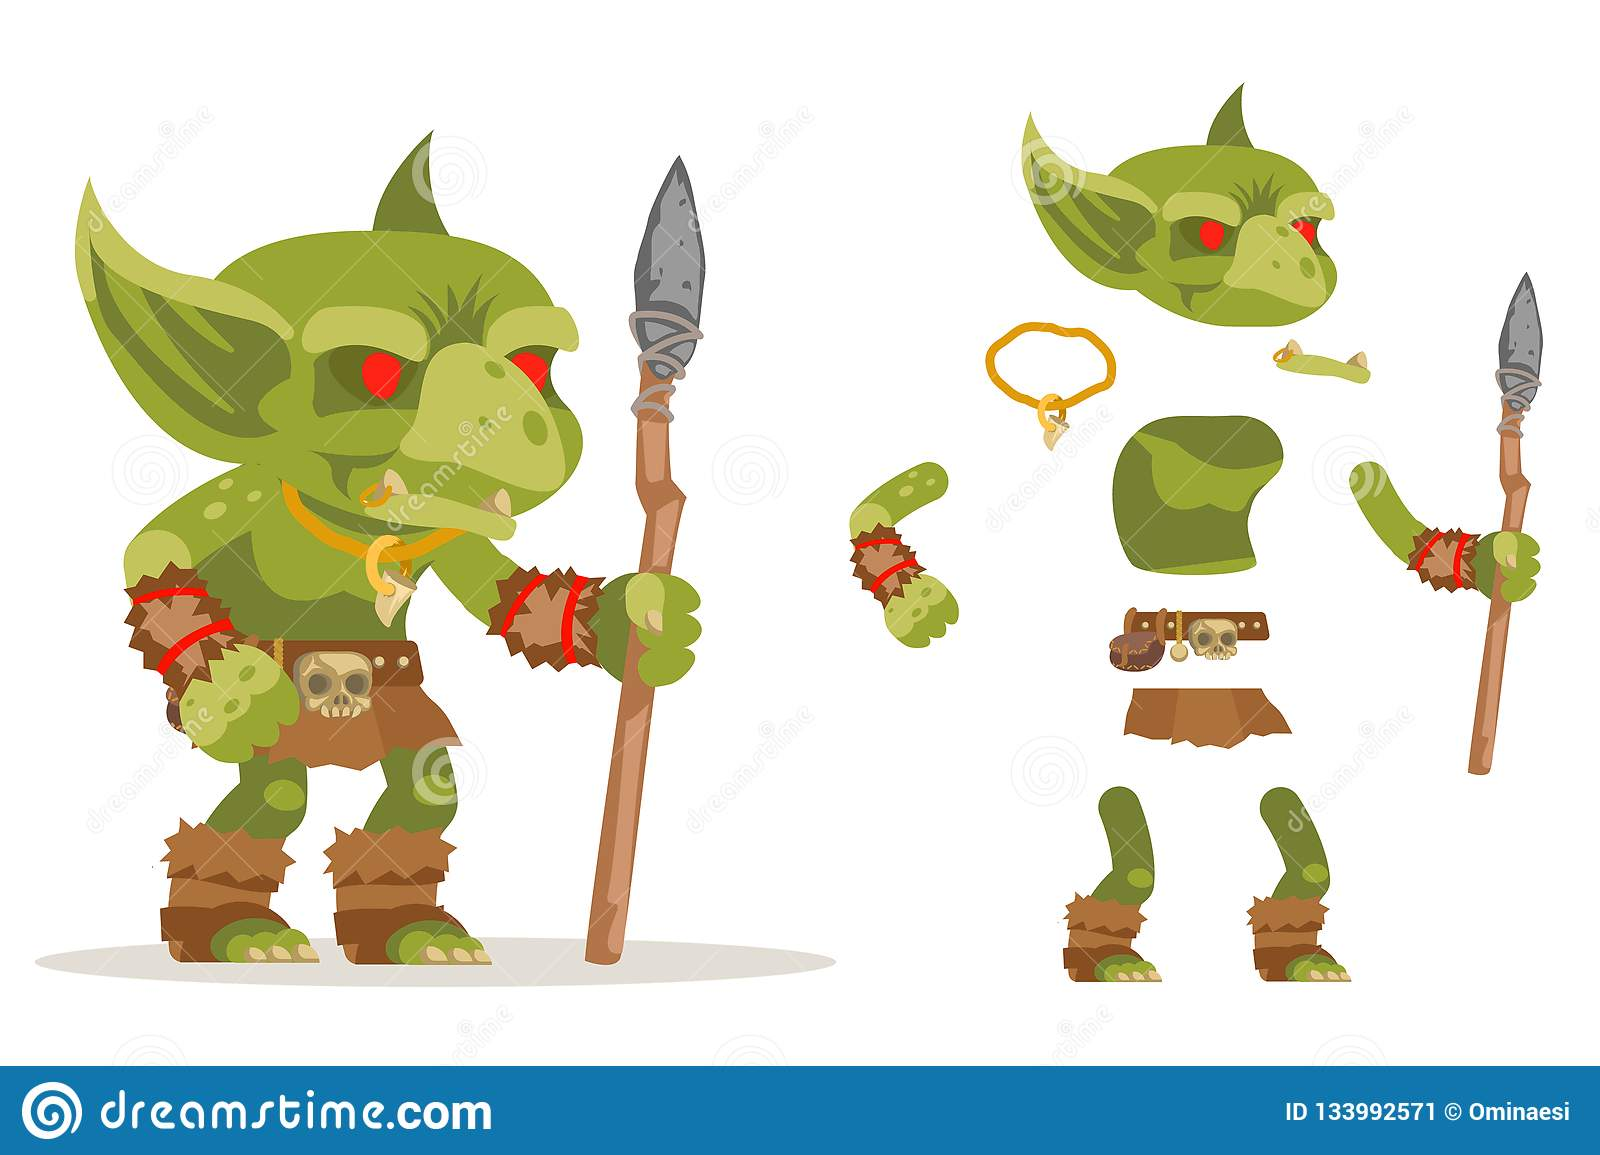 Dungeon Monster Goblin Evil Minion Fantasy Medieval Action RPG Game